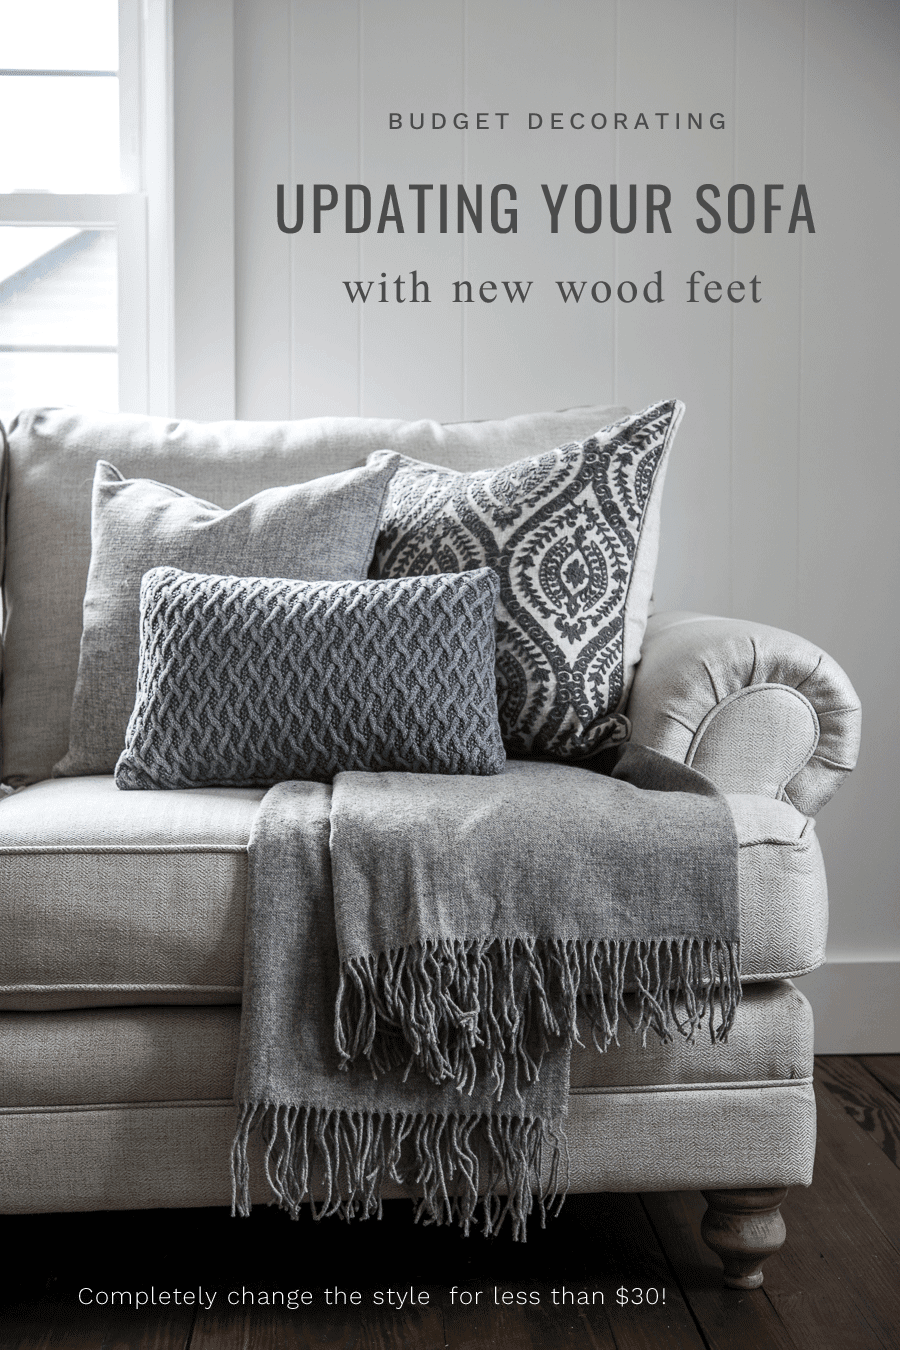 Update the style of your sofa with new feet